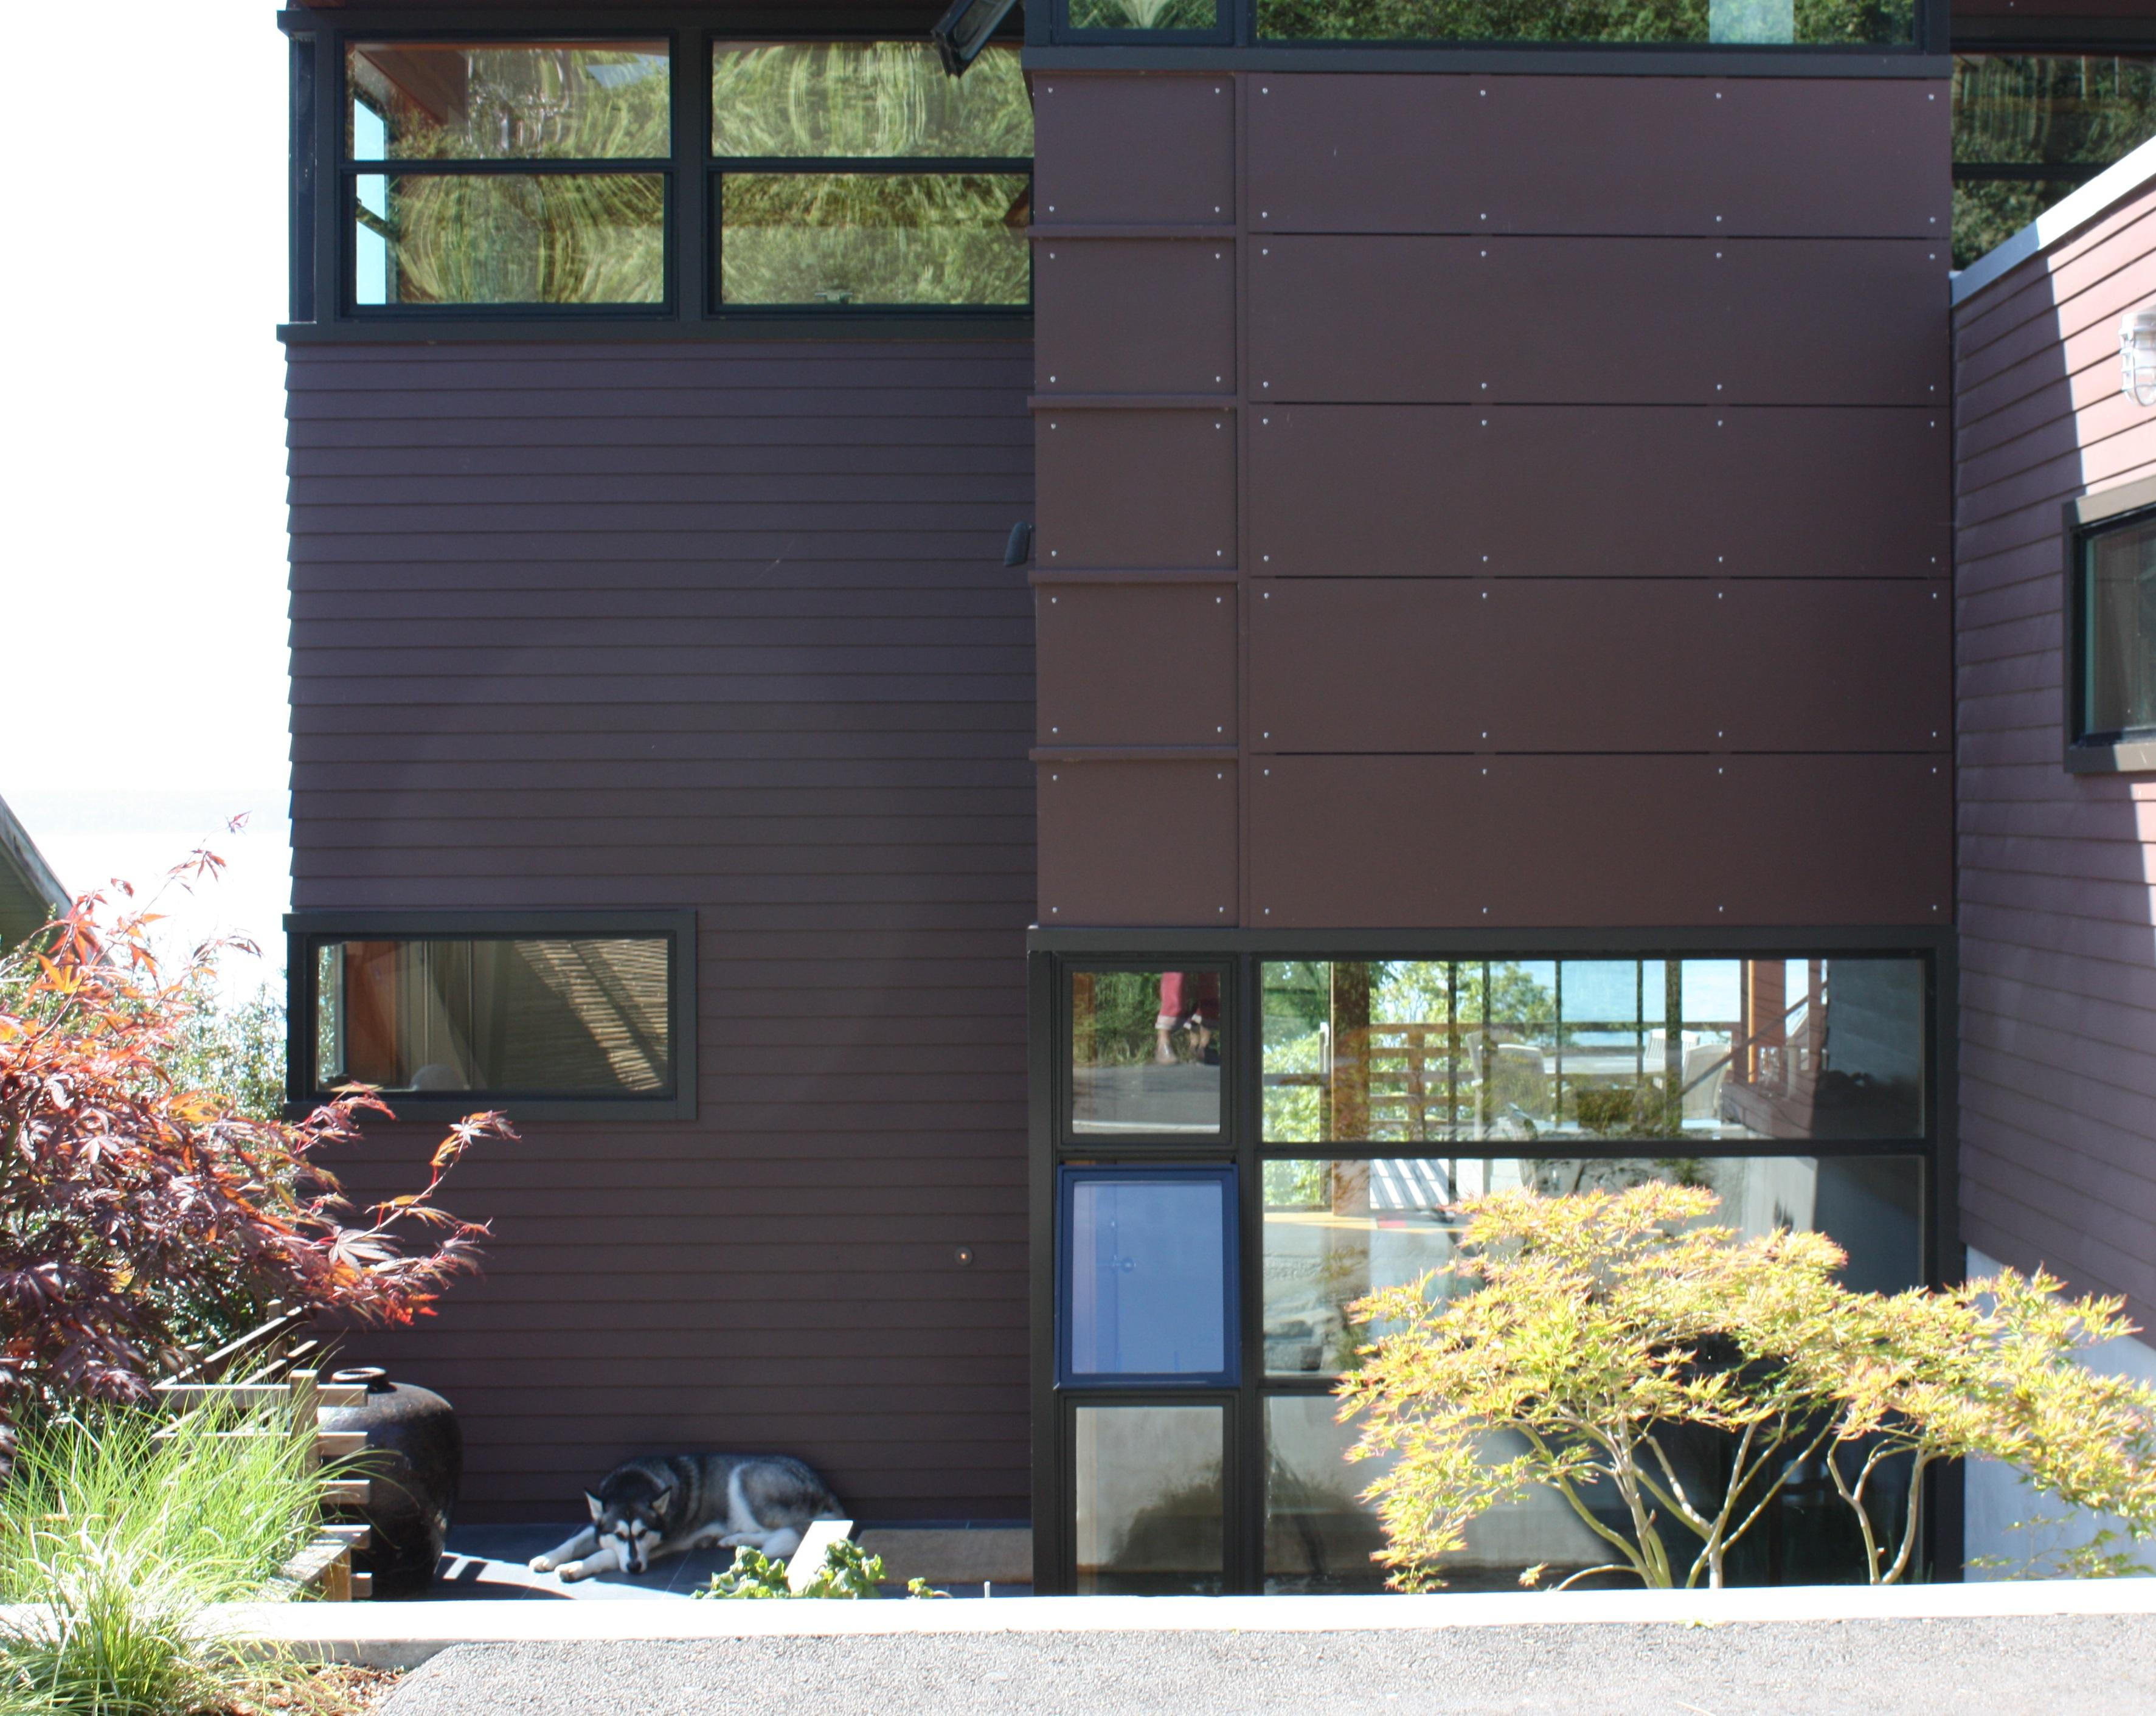 <p>This week we're previewing houses from{&amp;nbsp;}<a  href=&quot;http://mads.media/2019-seattle-modern-home-tour/&quot; target=&quot;_blank&quot; title=&quot;http://mads.media/2019-seattle-modern-home-tour/&quot;>Seattle's 2019 Modern Home Tour</a>, happening Saturday, April 27. Our next home is described by the owner as dramatic, yet serene - and we couldn't agree more. The West Seattle property is 3 bed/3 bath built in 2008, featuring four stories, expansive views, open steel staircase, and a koi pond.{&amp;nbsp;}Finch Design &amp; Production Inc.; Lighting:{&amp;nbsp;}DePeleyen Studio. (Image:{&amp;nbsp;}(Image: Finch Design &amp; Production Inc.)</p>